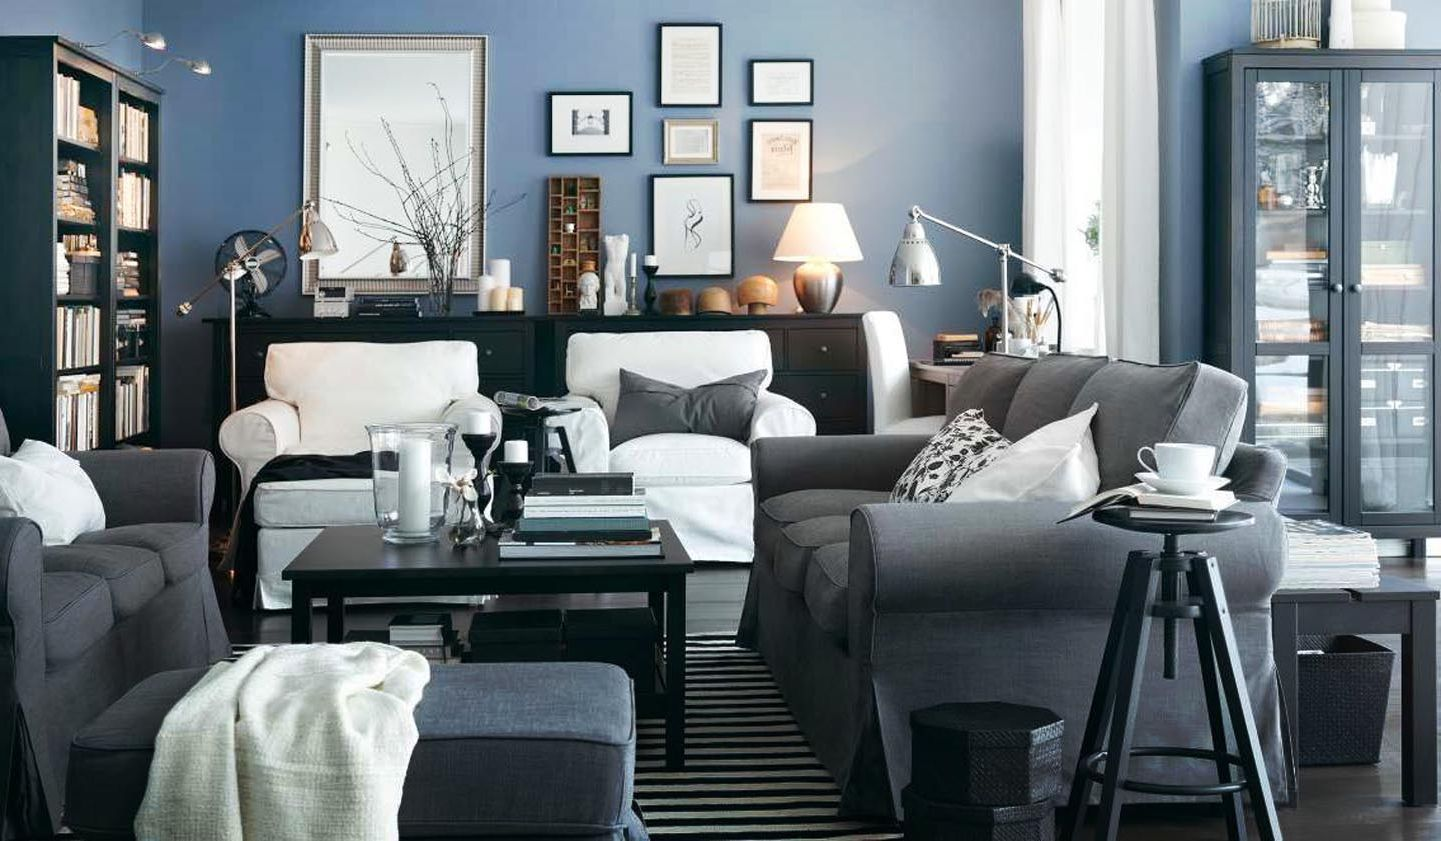 Nice other living room furniture interior stunning blue walls white draperies wall pictures table lamp grey sofa for elegant living room idea grey sofa